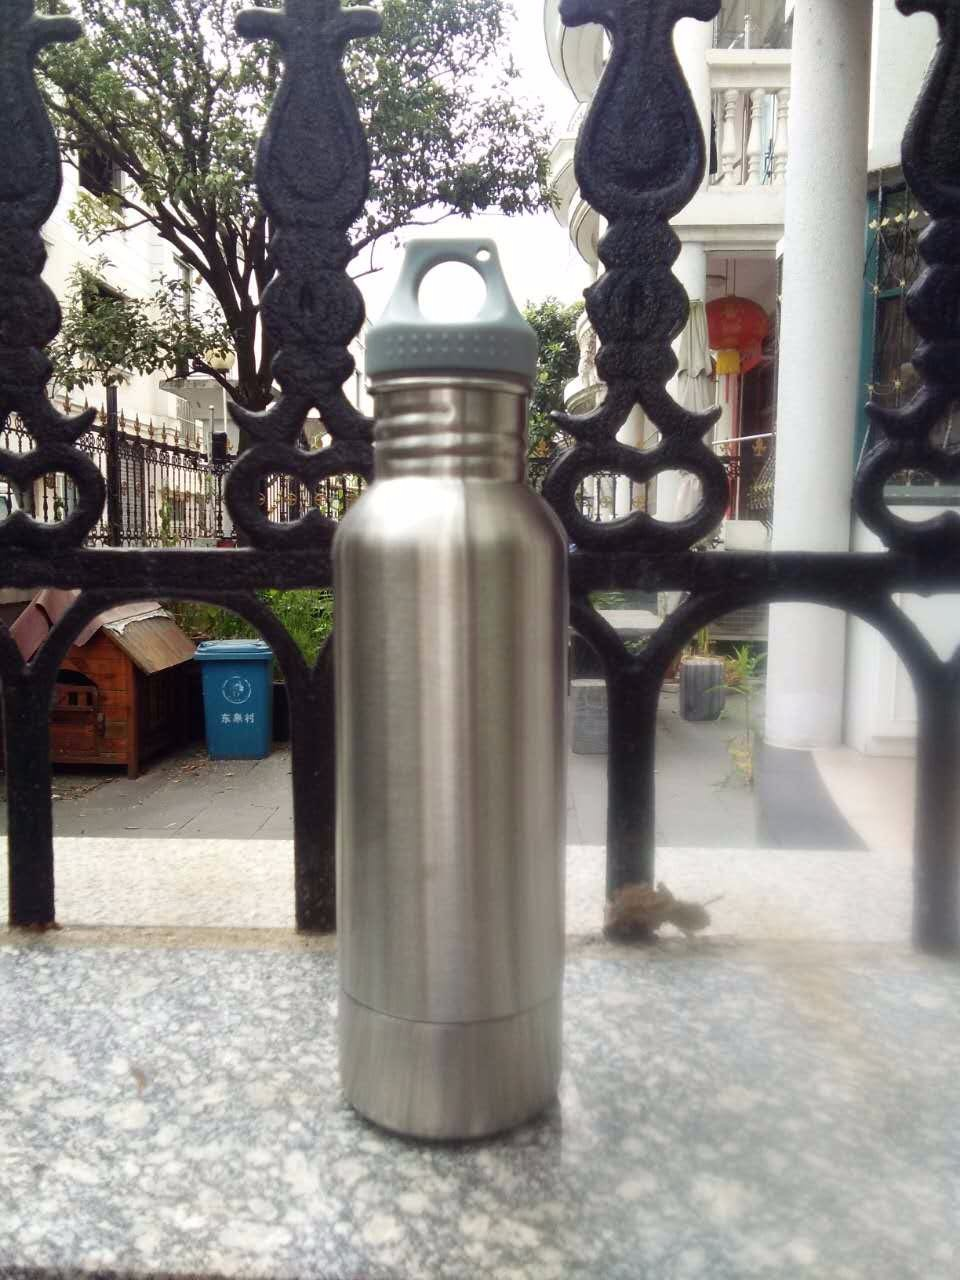 new style stainless steel wide mouth bottle with bottle opener and beer